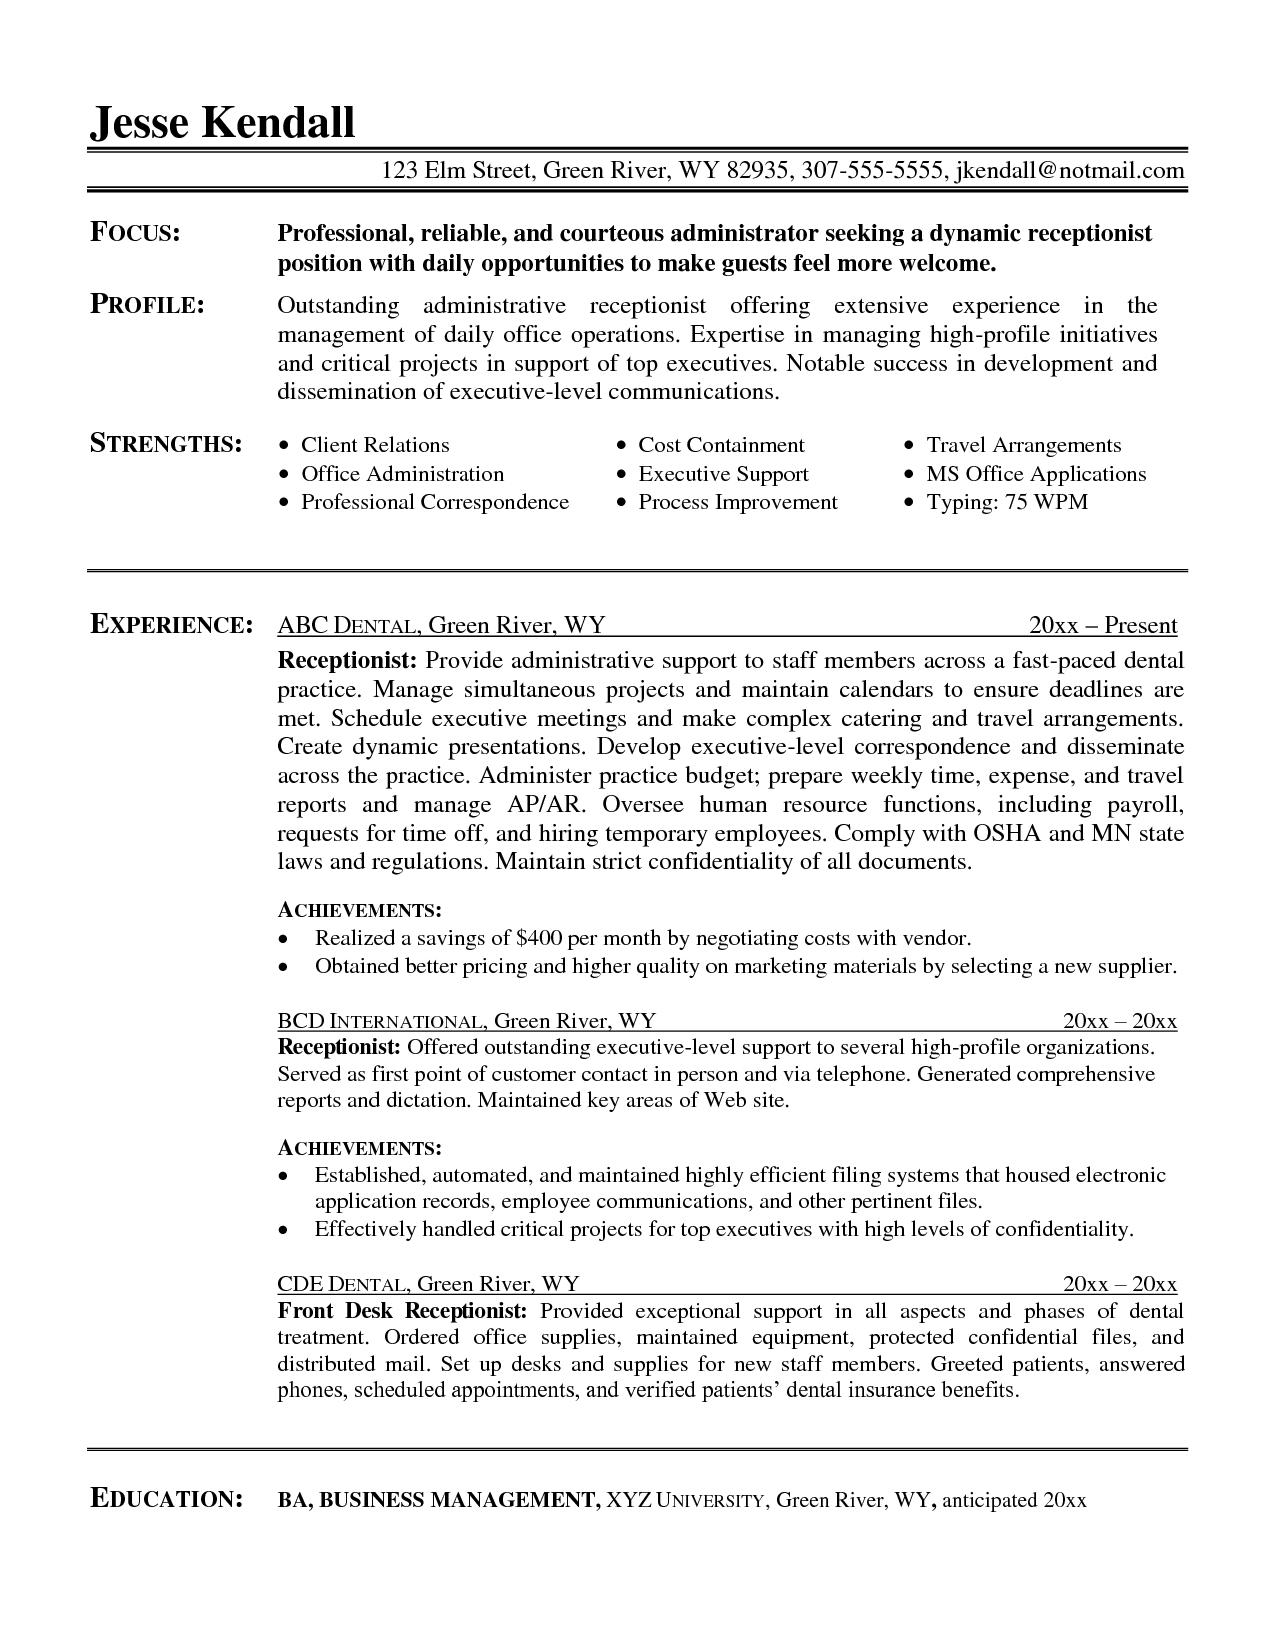 Resume Great Receptionist Resume resumes for receptionists mutual agreement between two parties salary slip template editable gift efc7769eeb85226f4948eeef82d23d1b receptionistshtml